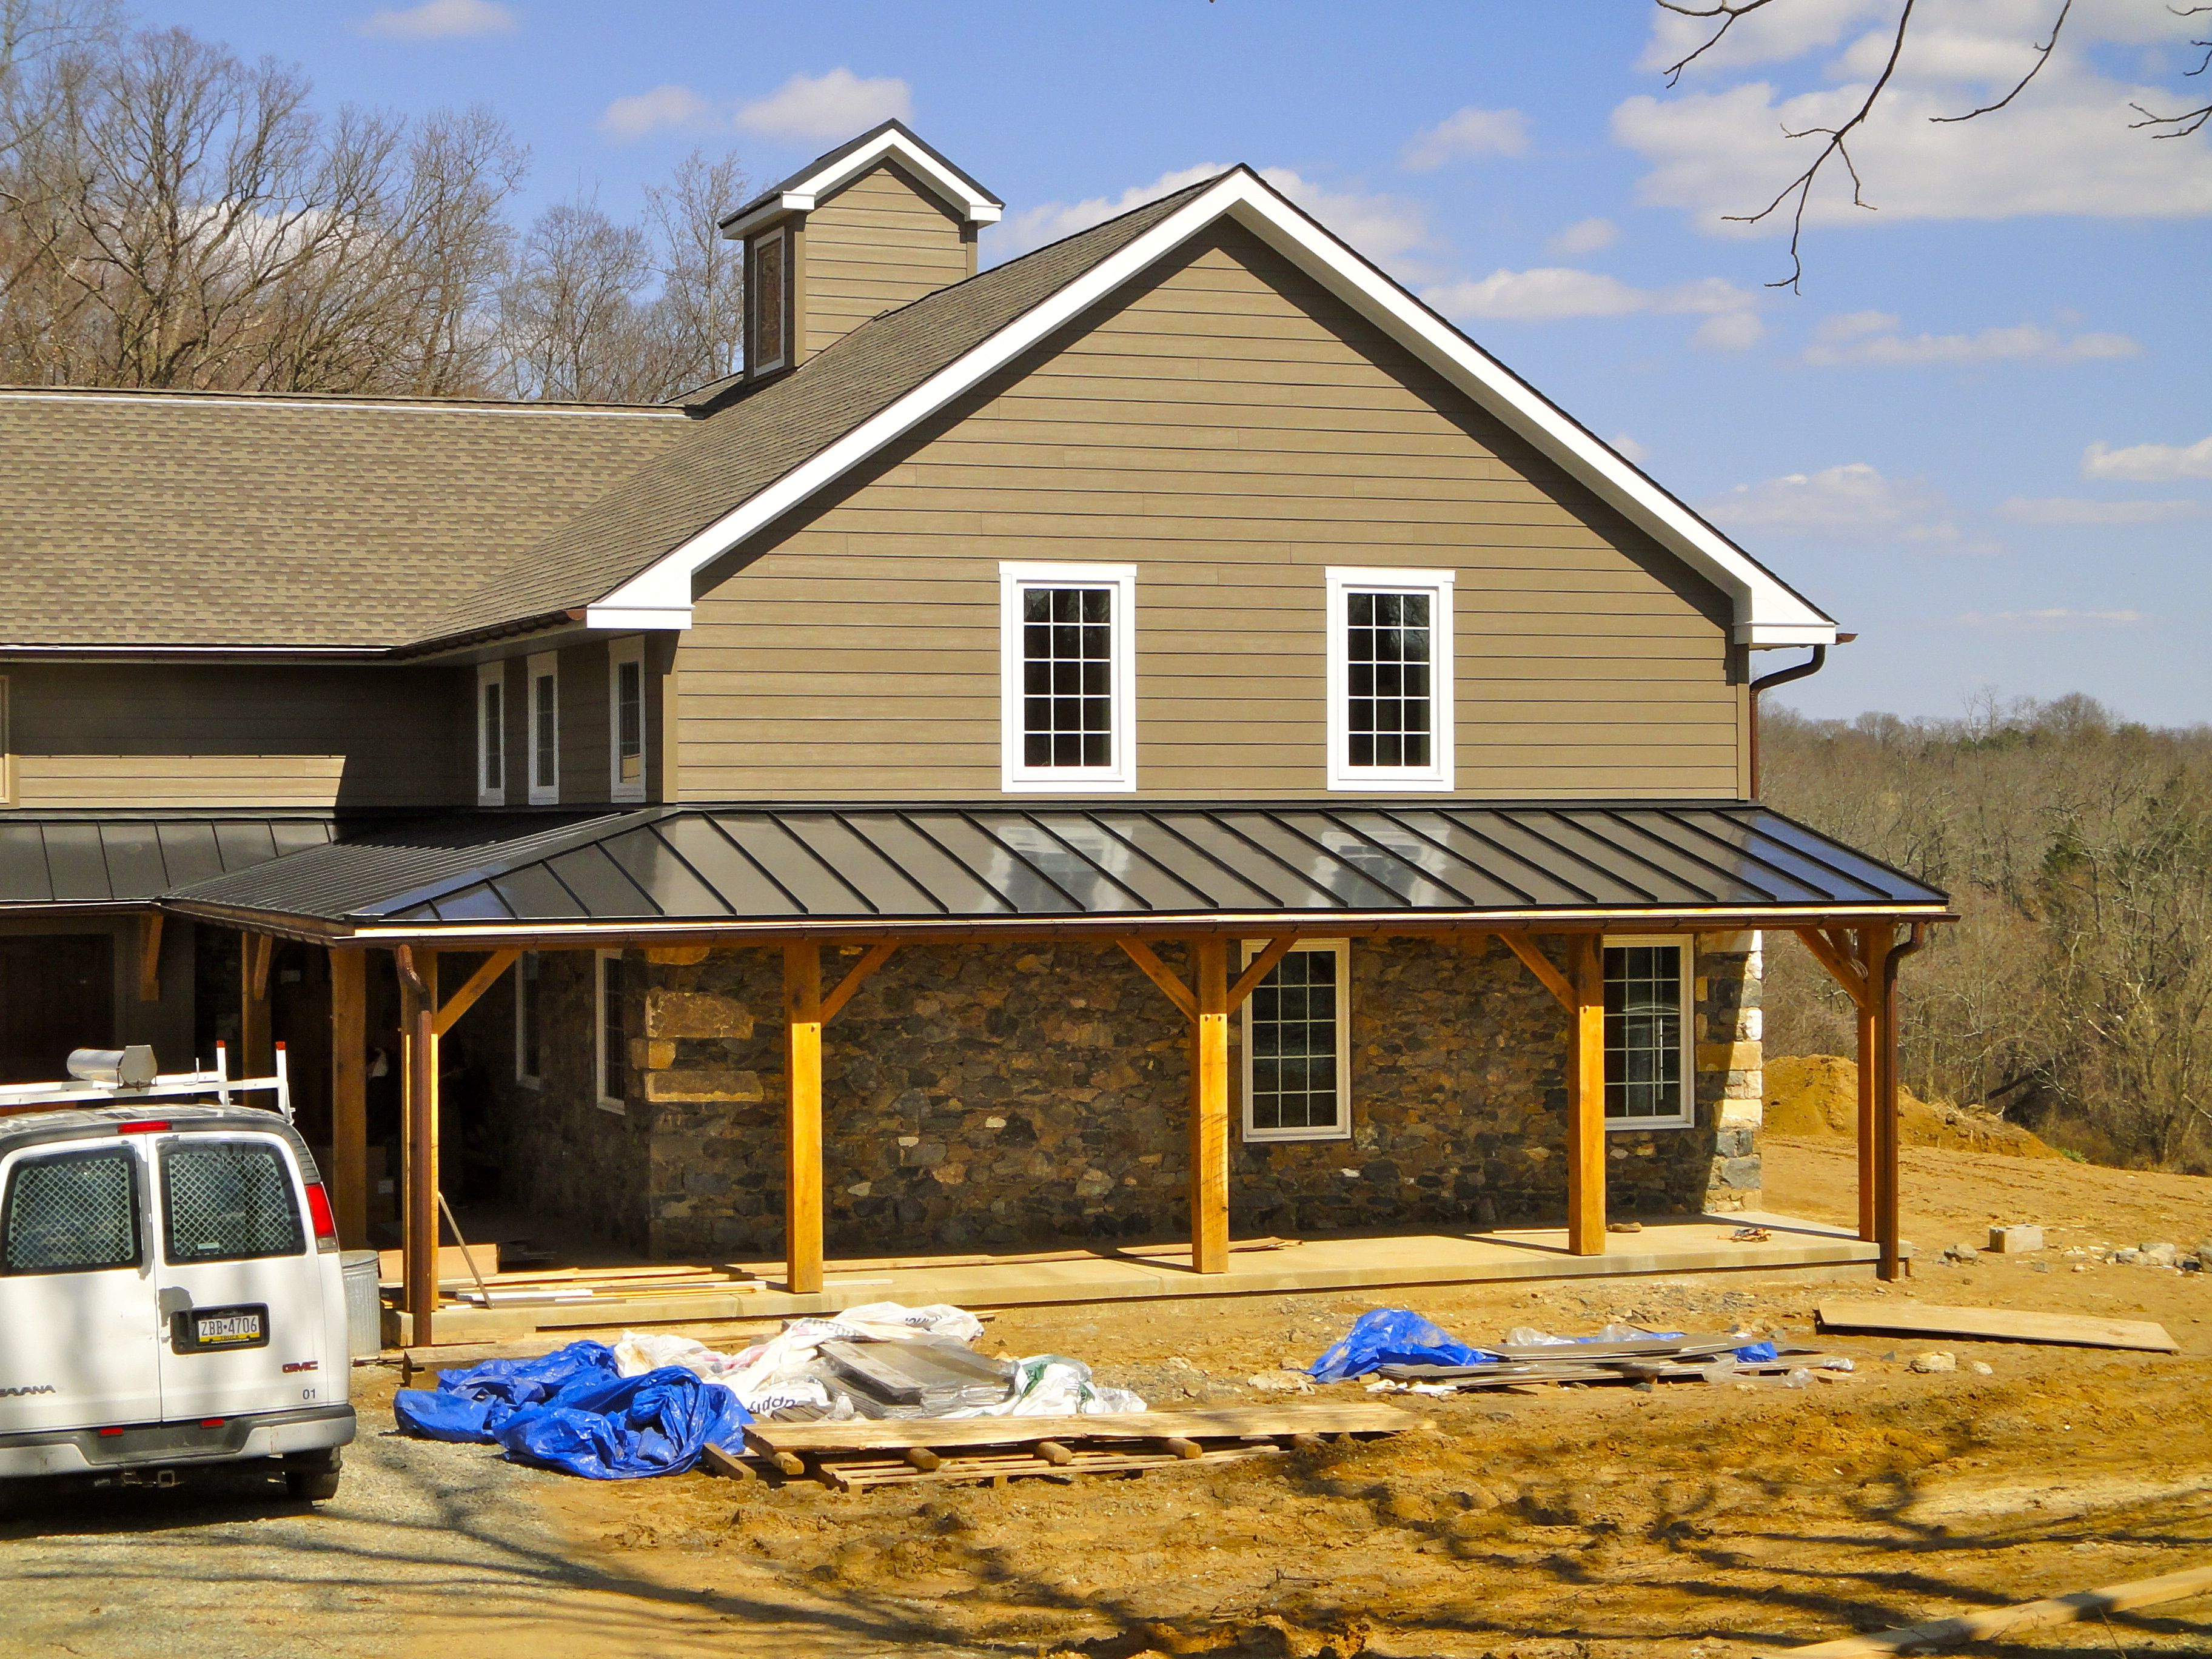 Metal Roof Is Shiny Houses With Hardie Board Siding And Metal Roof Google Search Metal Roof Hardie Board Siding Hardie Board